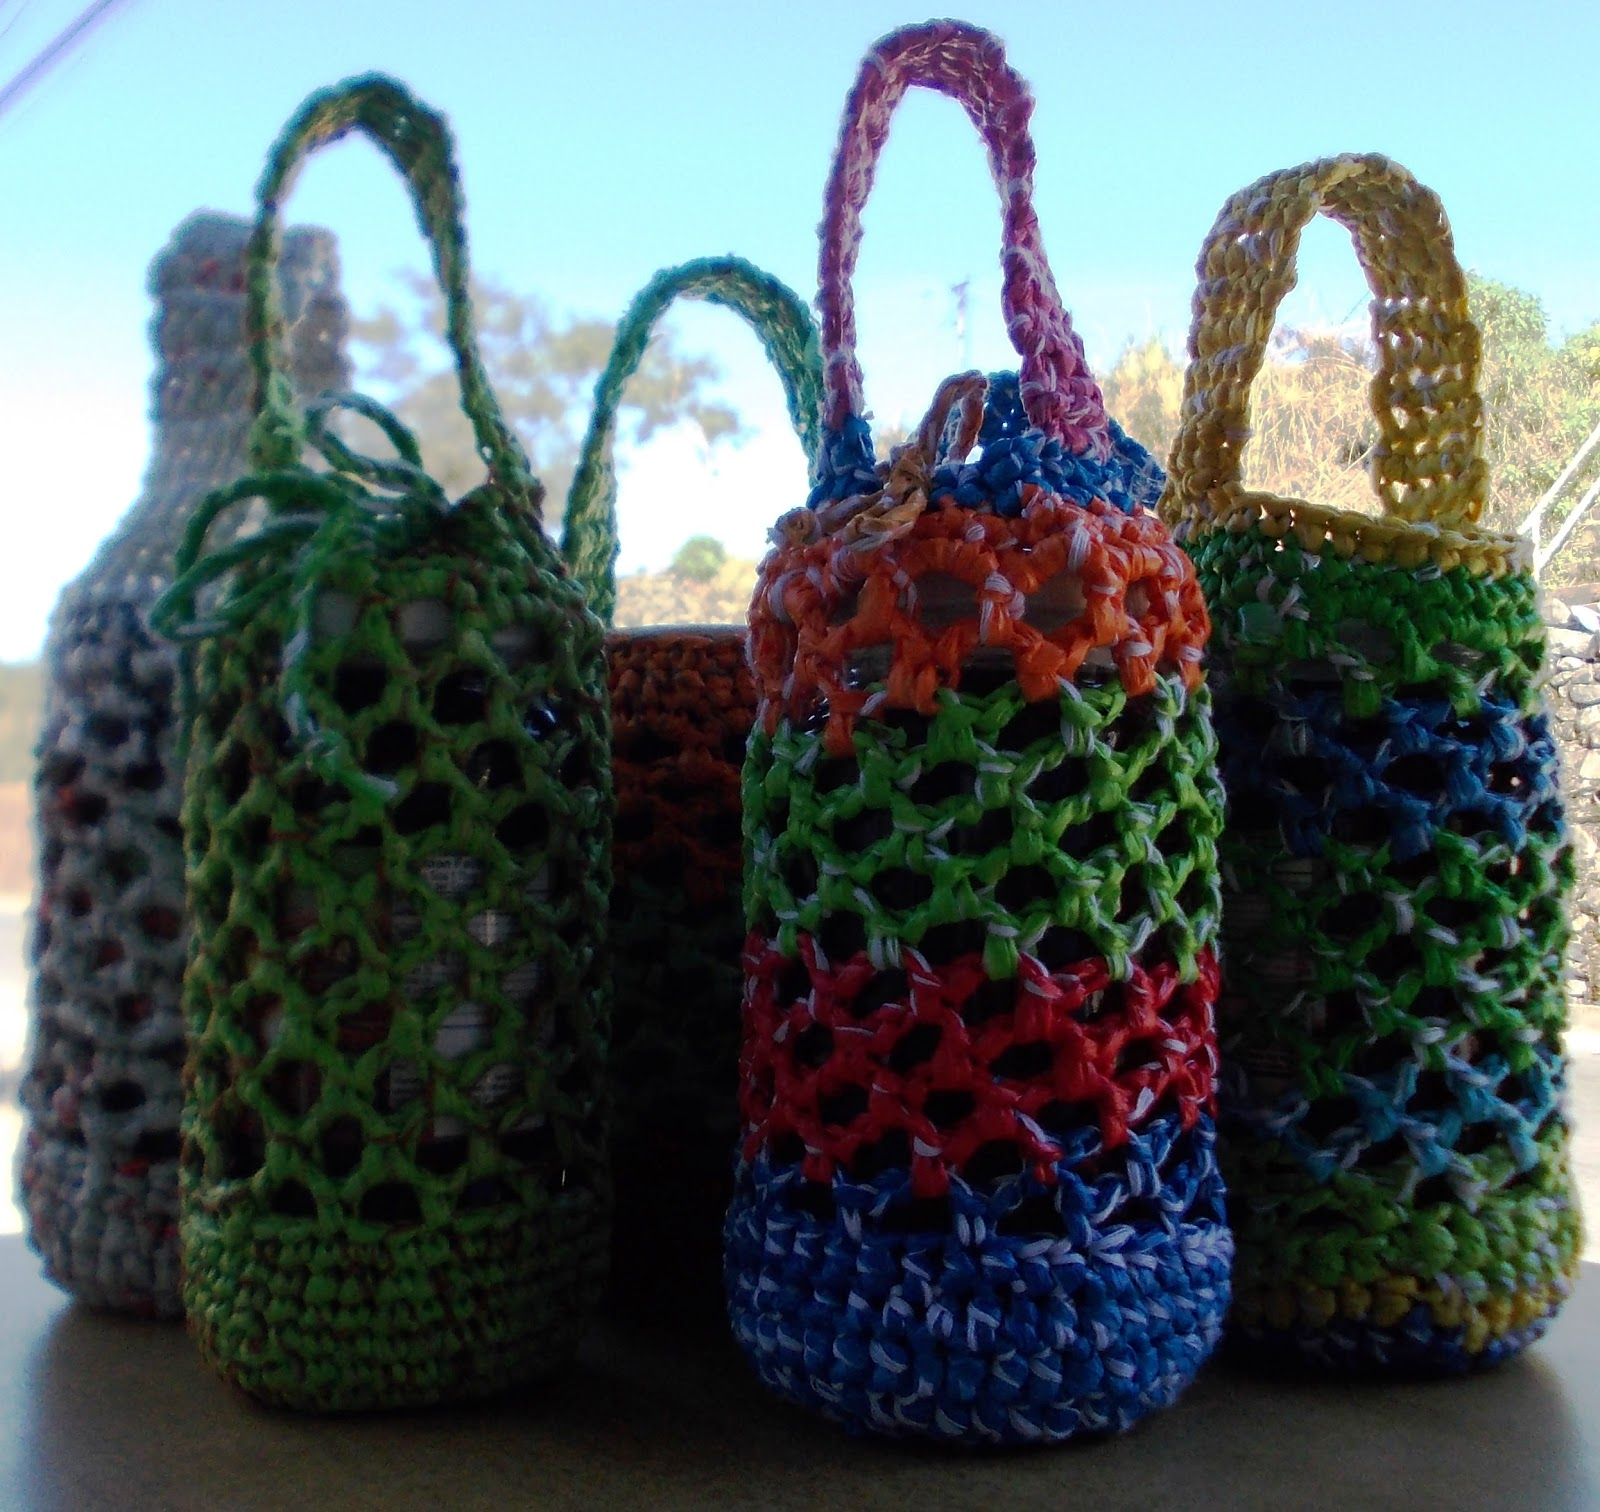 Crochet Pattern For Bags Plastic : Bboss Kikay Shop: Bottle Bags - Crocheted from Plastic ...